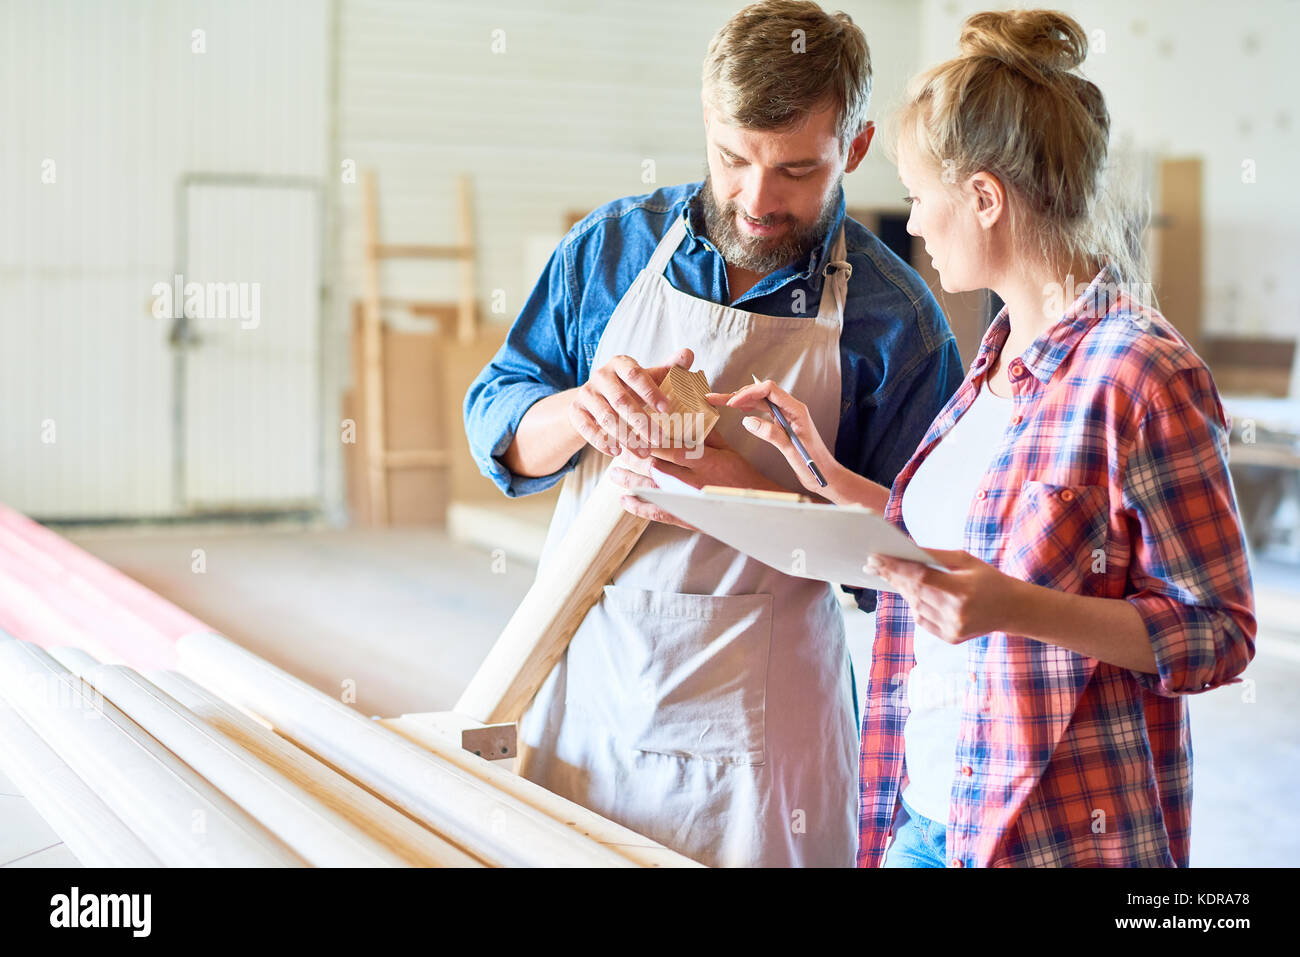 Modern Carpenters Choosing Wood in Joinery - Stock Image